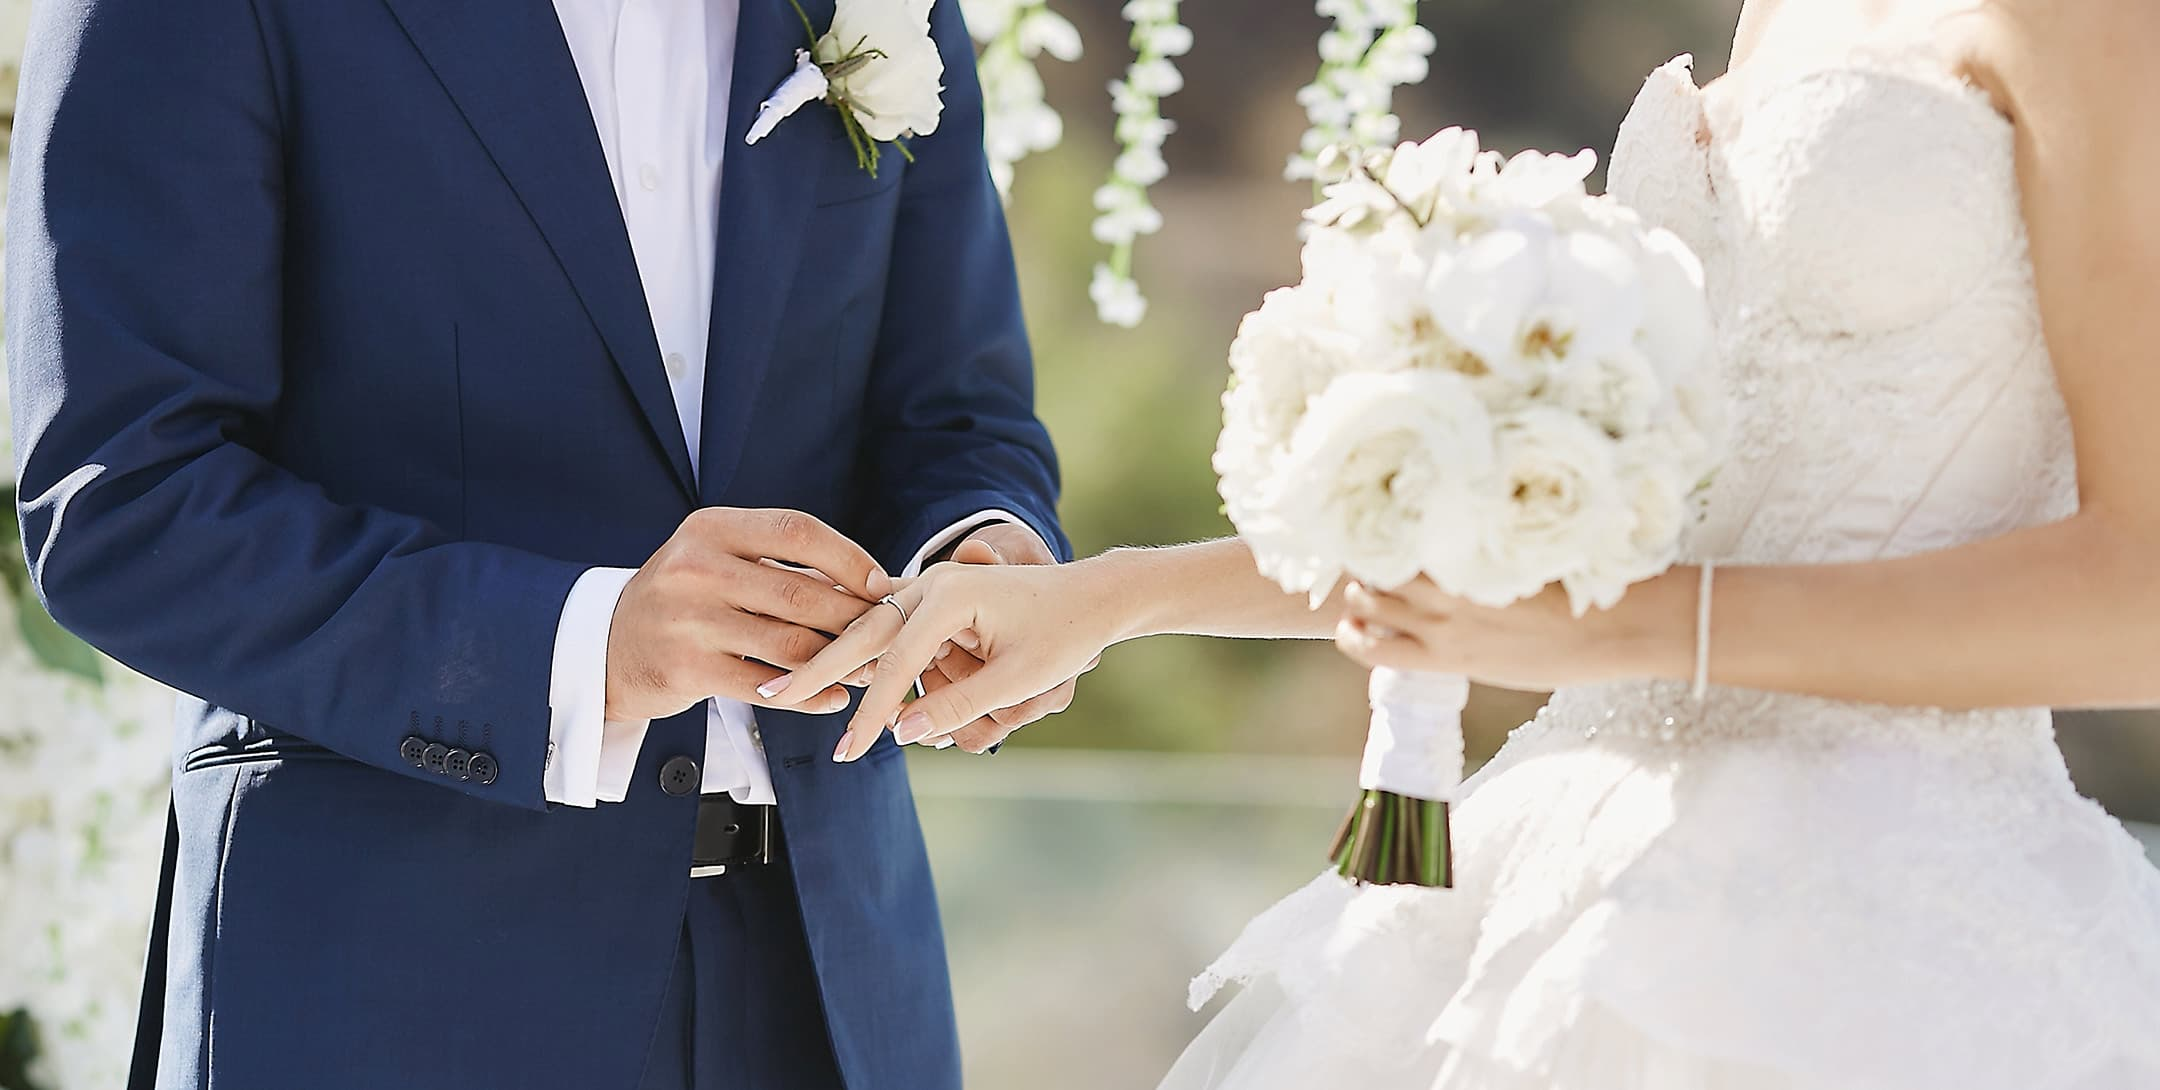 groom putting a ring on bride's finger during an outdoor ceremony